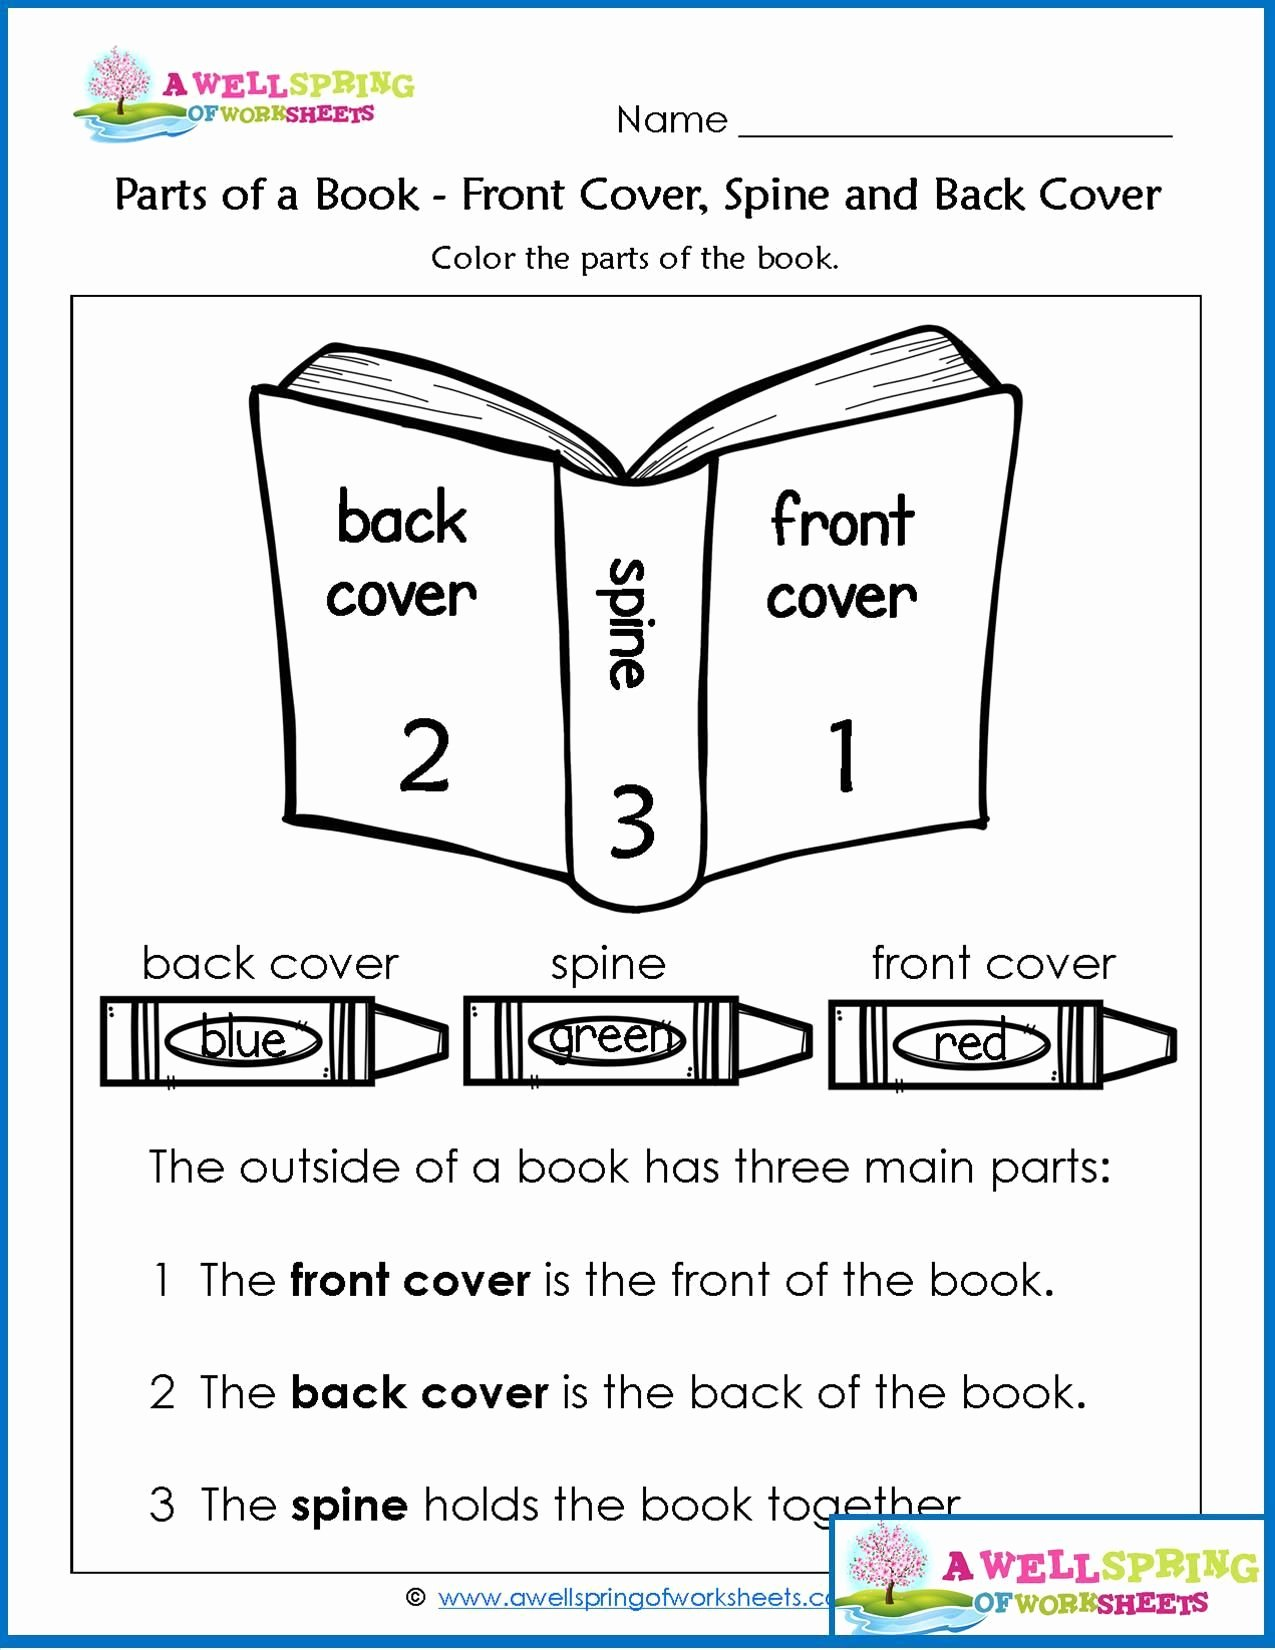 Parts Of A Book Worksheet Lovely Worksheets by Subject